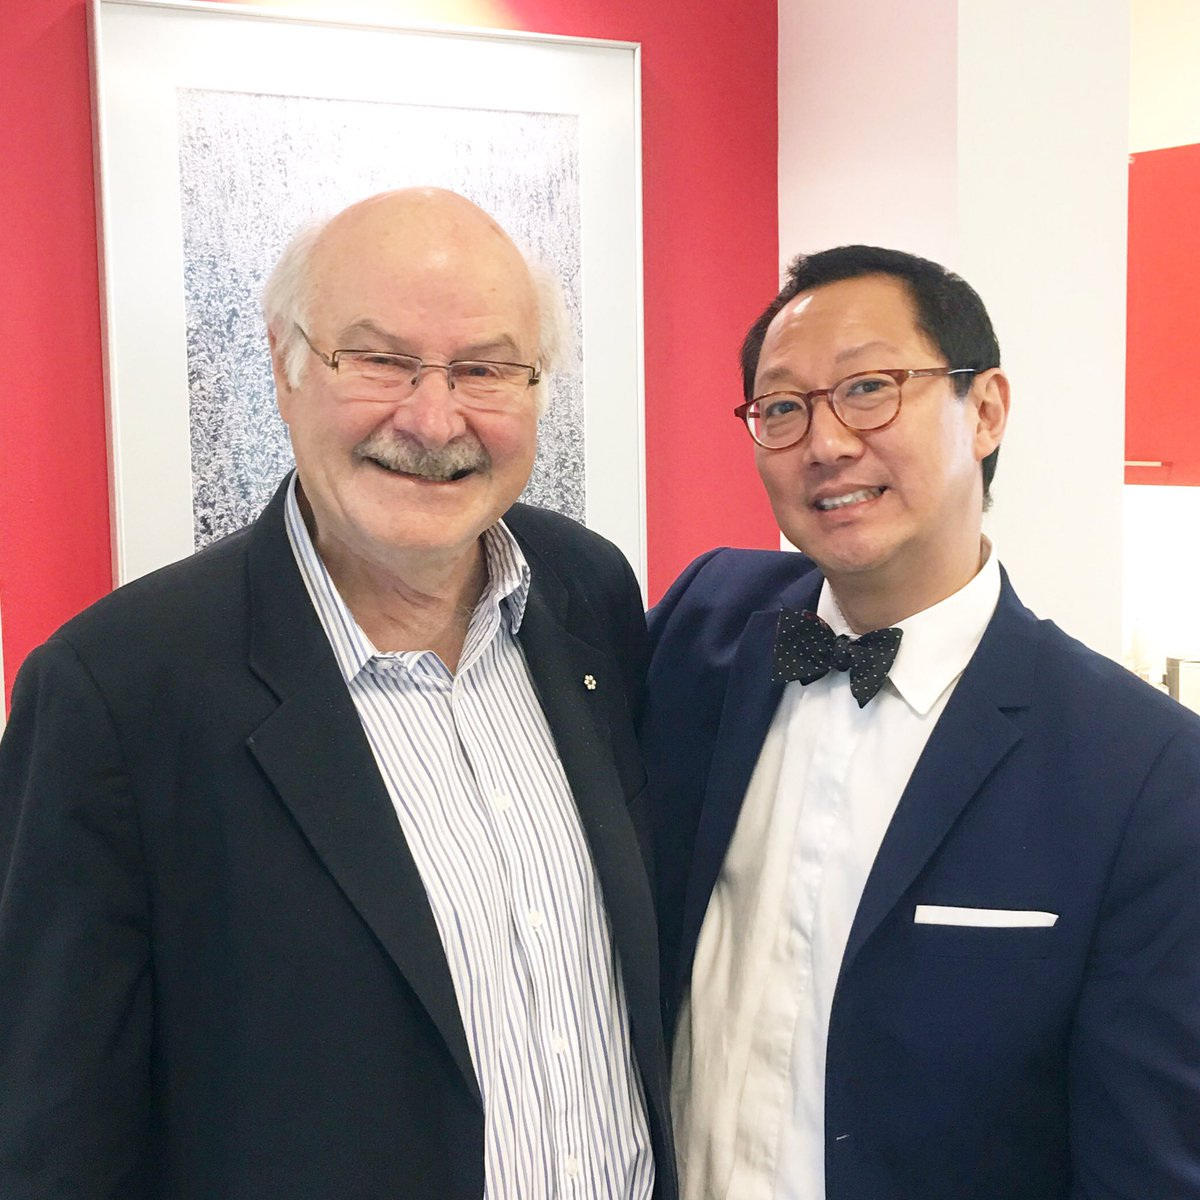 Harcourt with UBC President and Vice-Chancellor Santa J. Ono